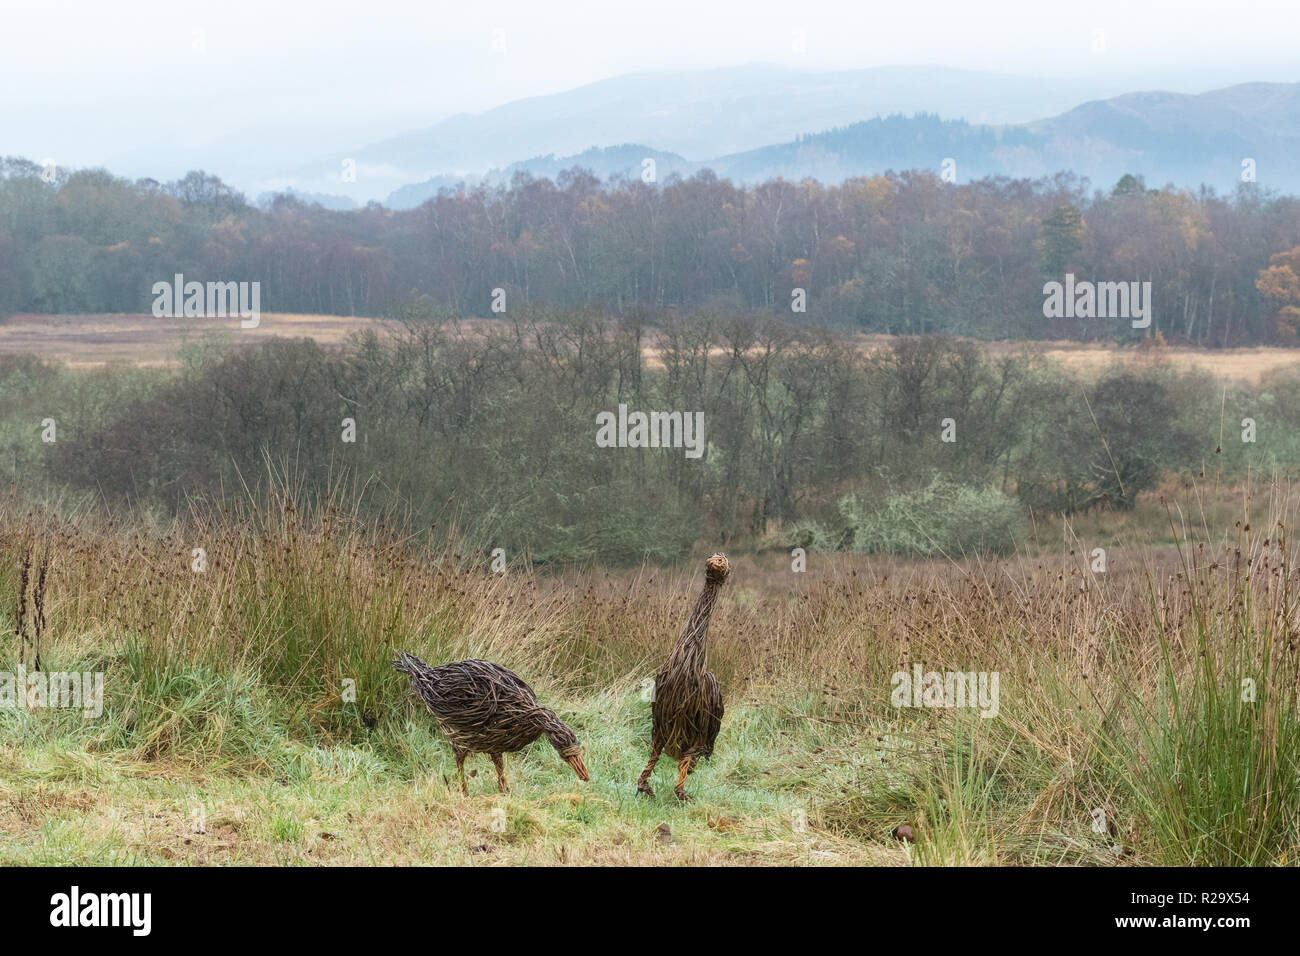 RSPB Loch Lomond visitor centre - willow geese sculptures - Stock Image